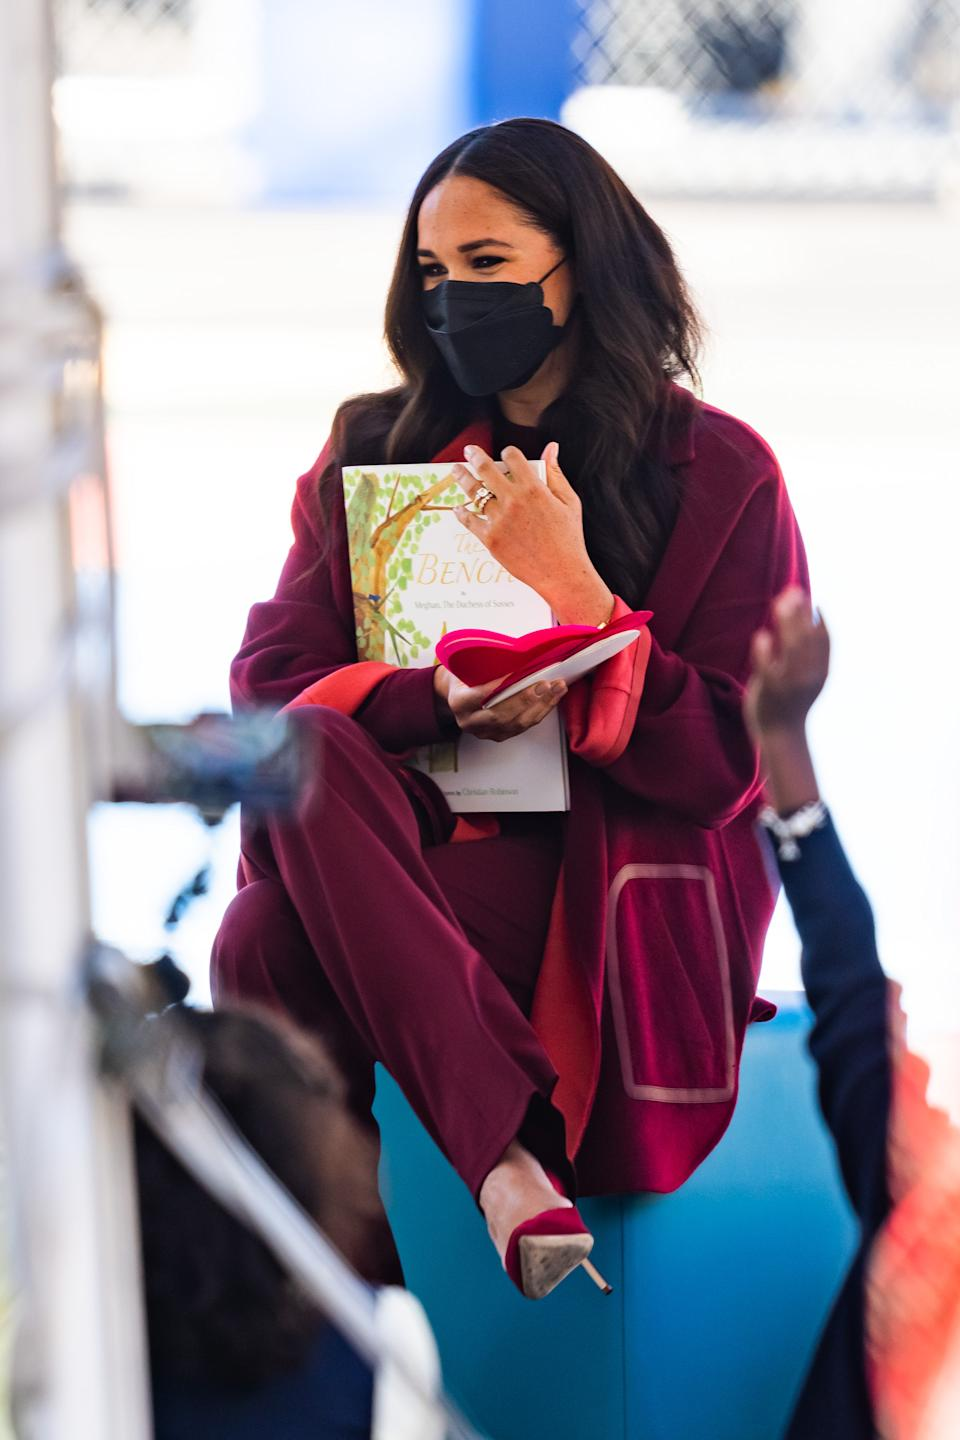 Meghan Markle, Duchess of Sussex reads to school children from her book, The Bench in Harlem on September 24, 2021 in New York City